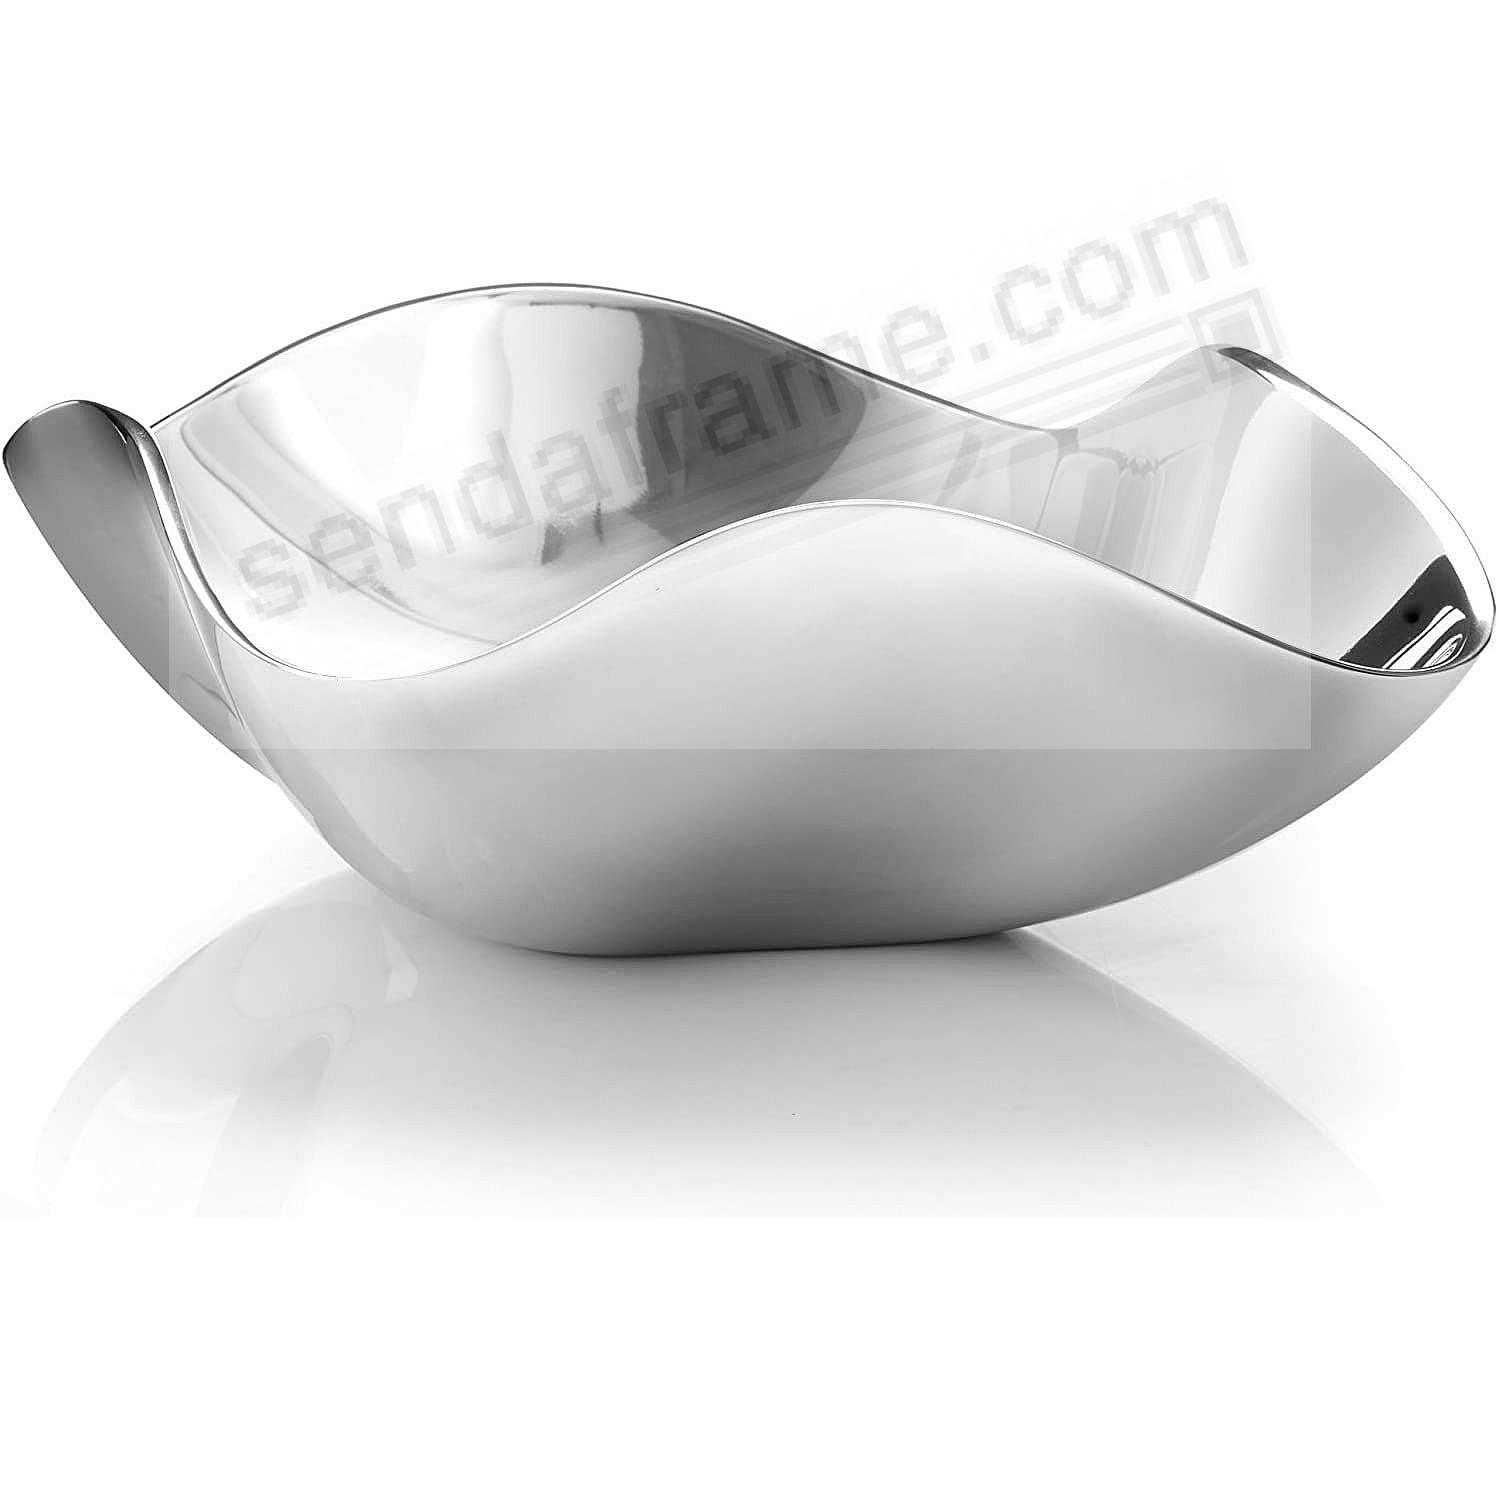 The VENUS OCEANA SERVING BOWL crafted by Nambe®